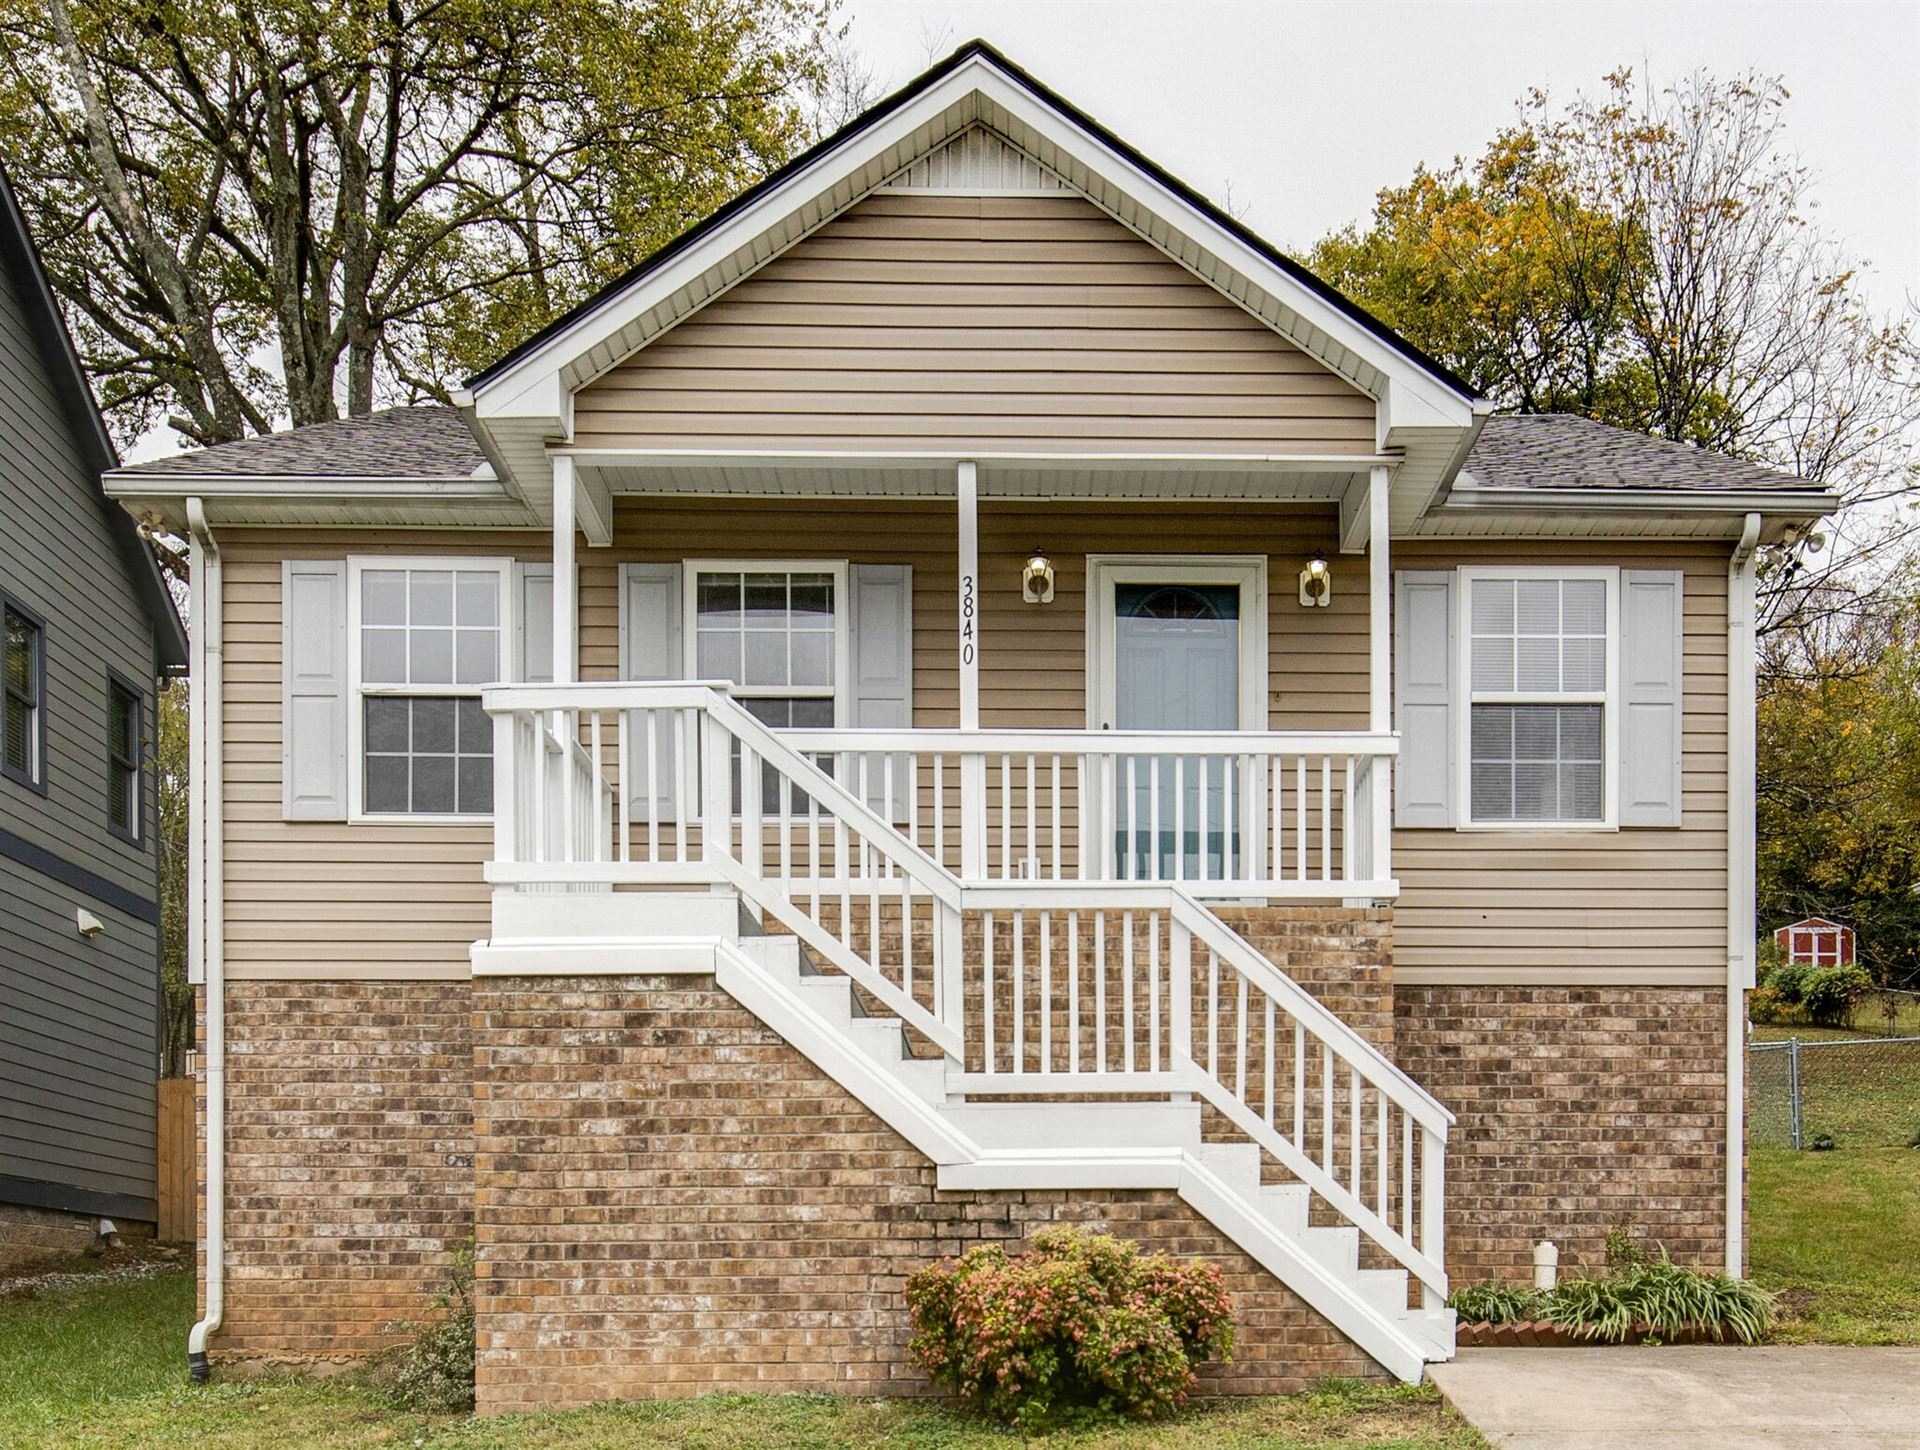 3840 Hutson Ave, Nashville, TN 37216 - MLS#: 2202957